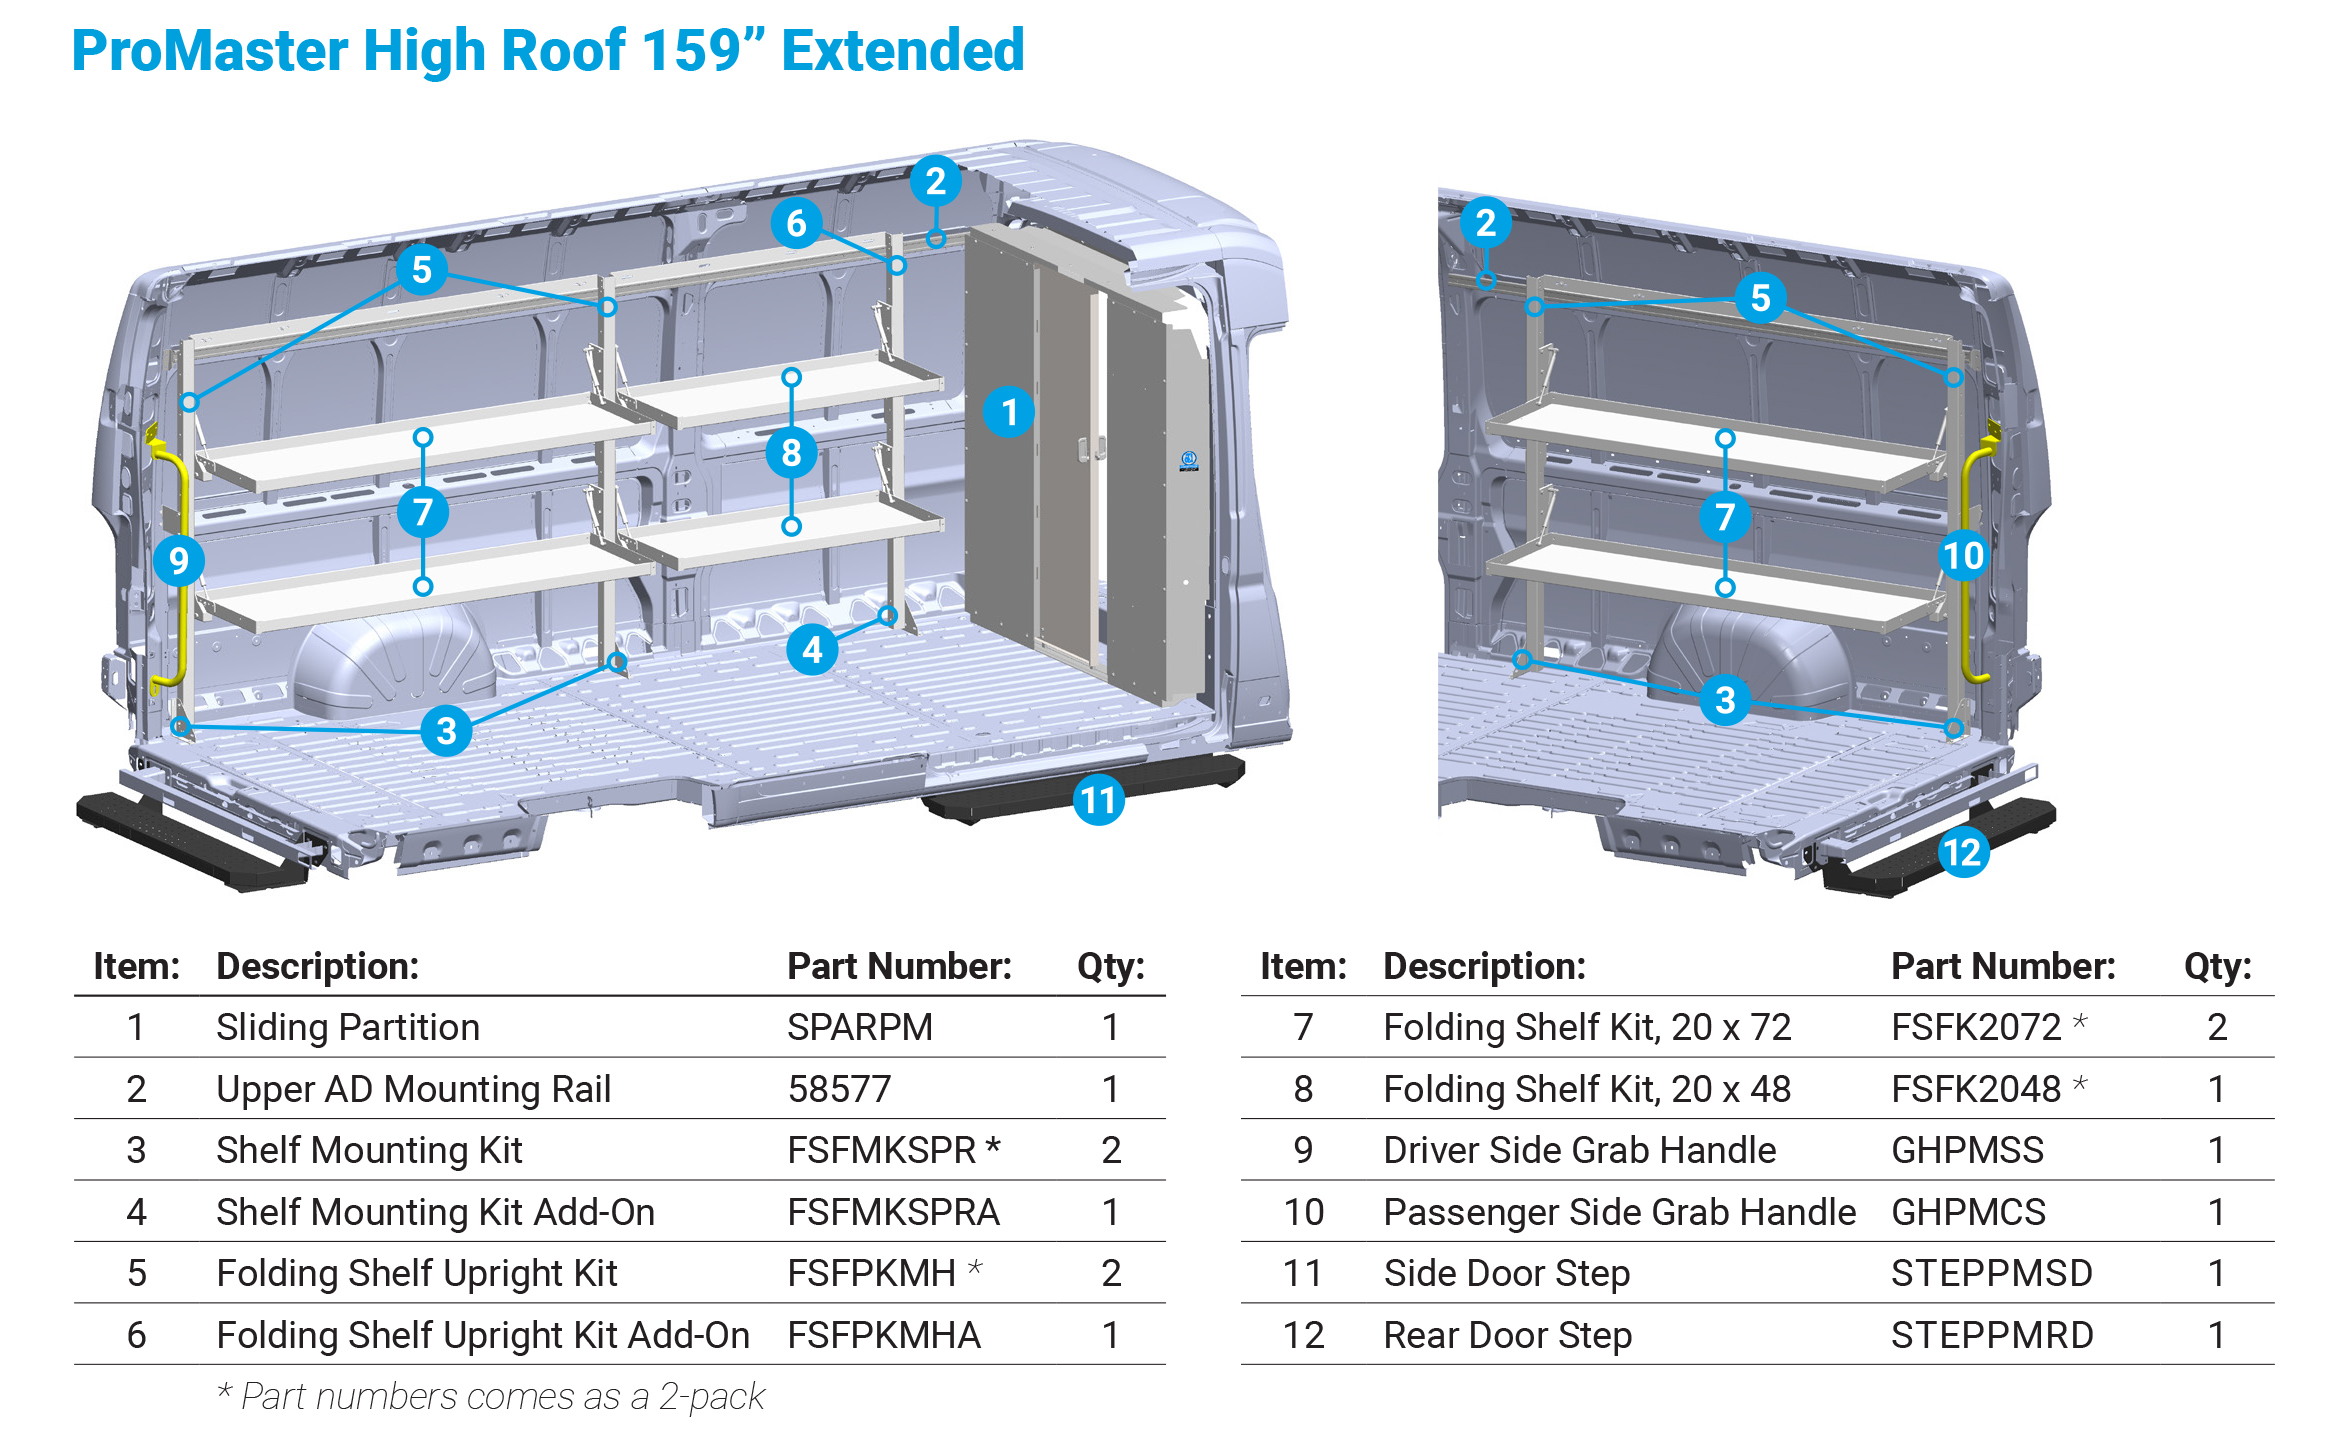 promaster-high-roof-159-ext.jpg